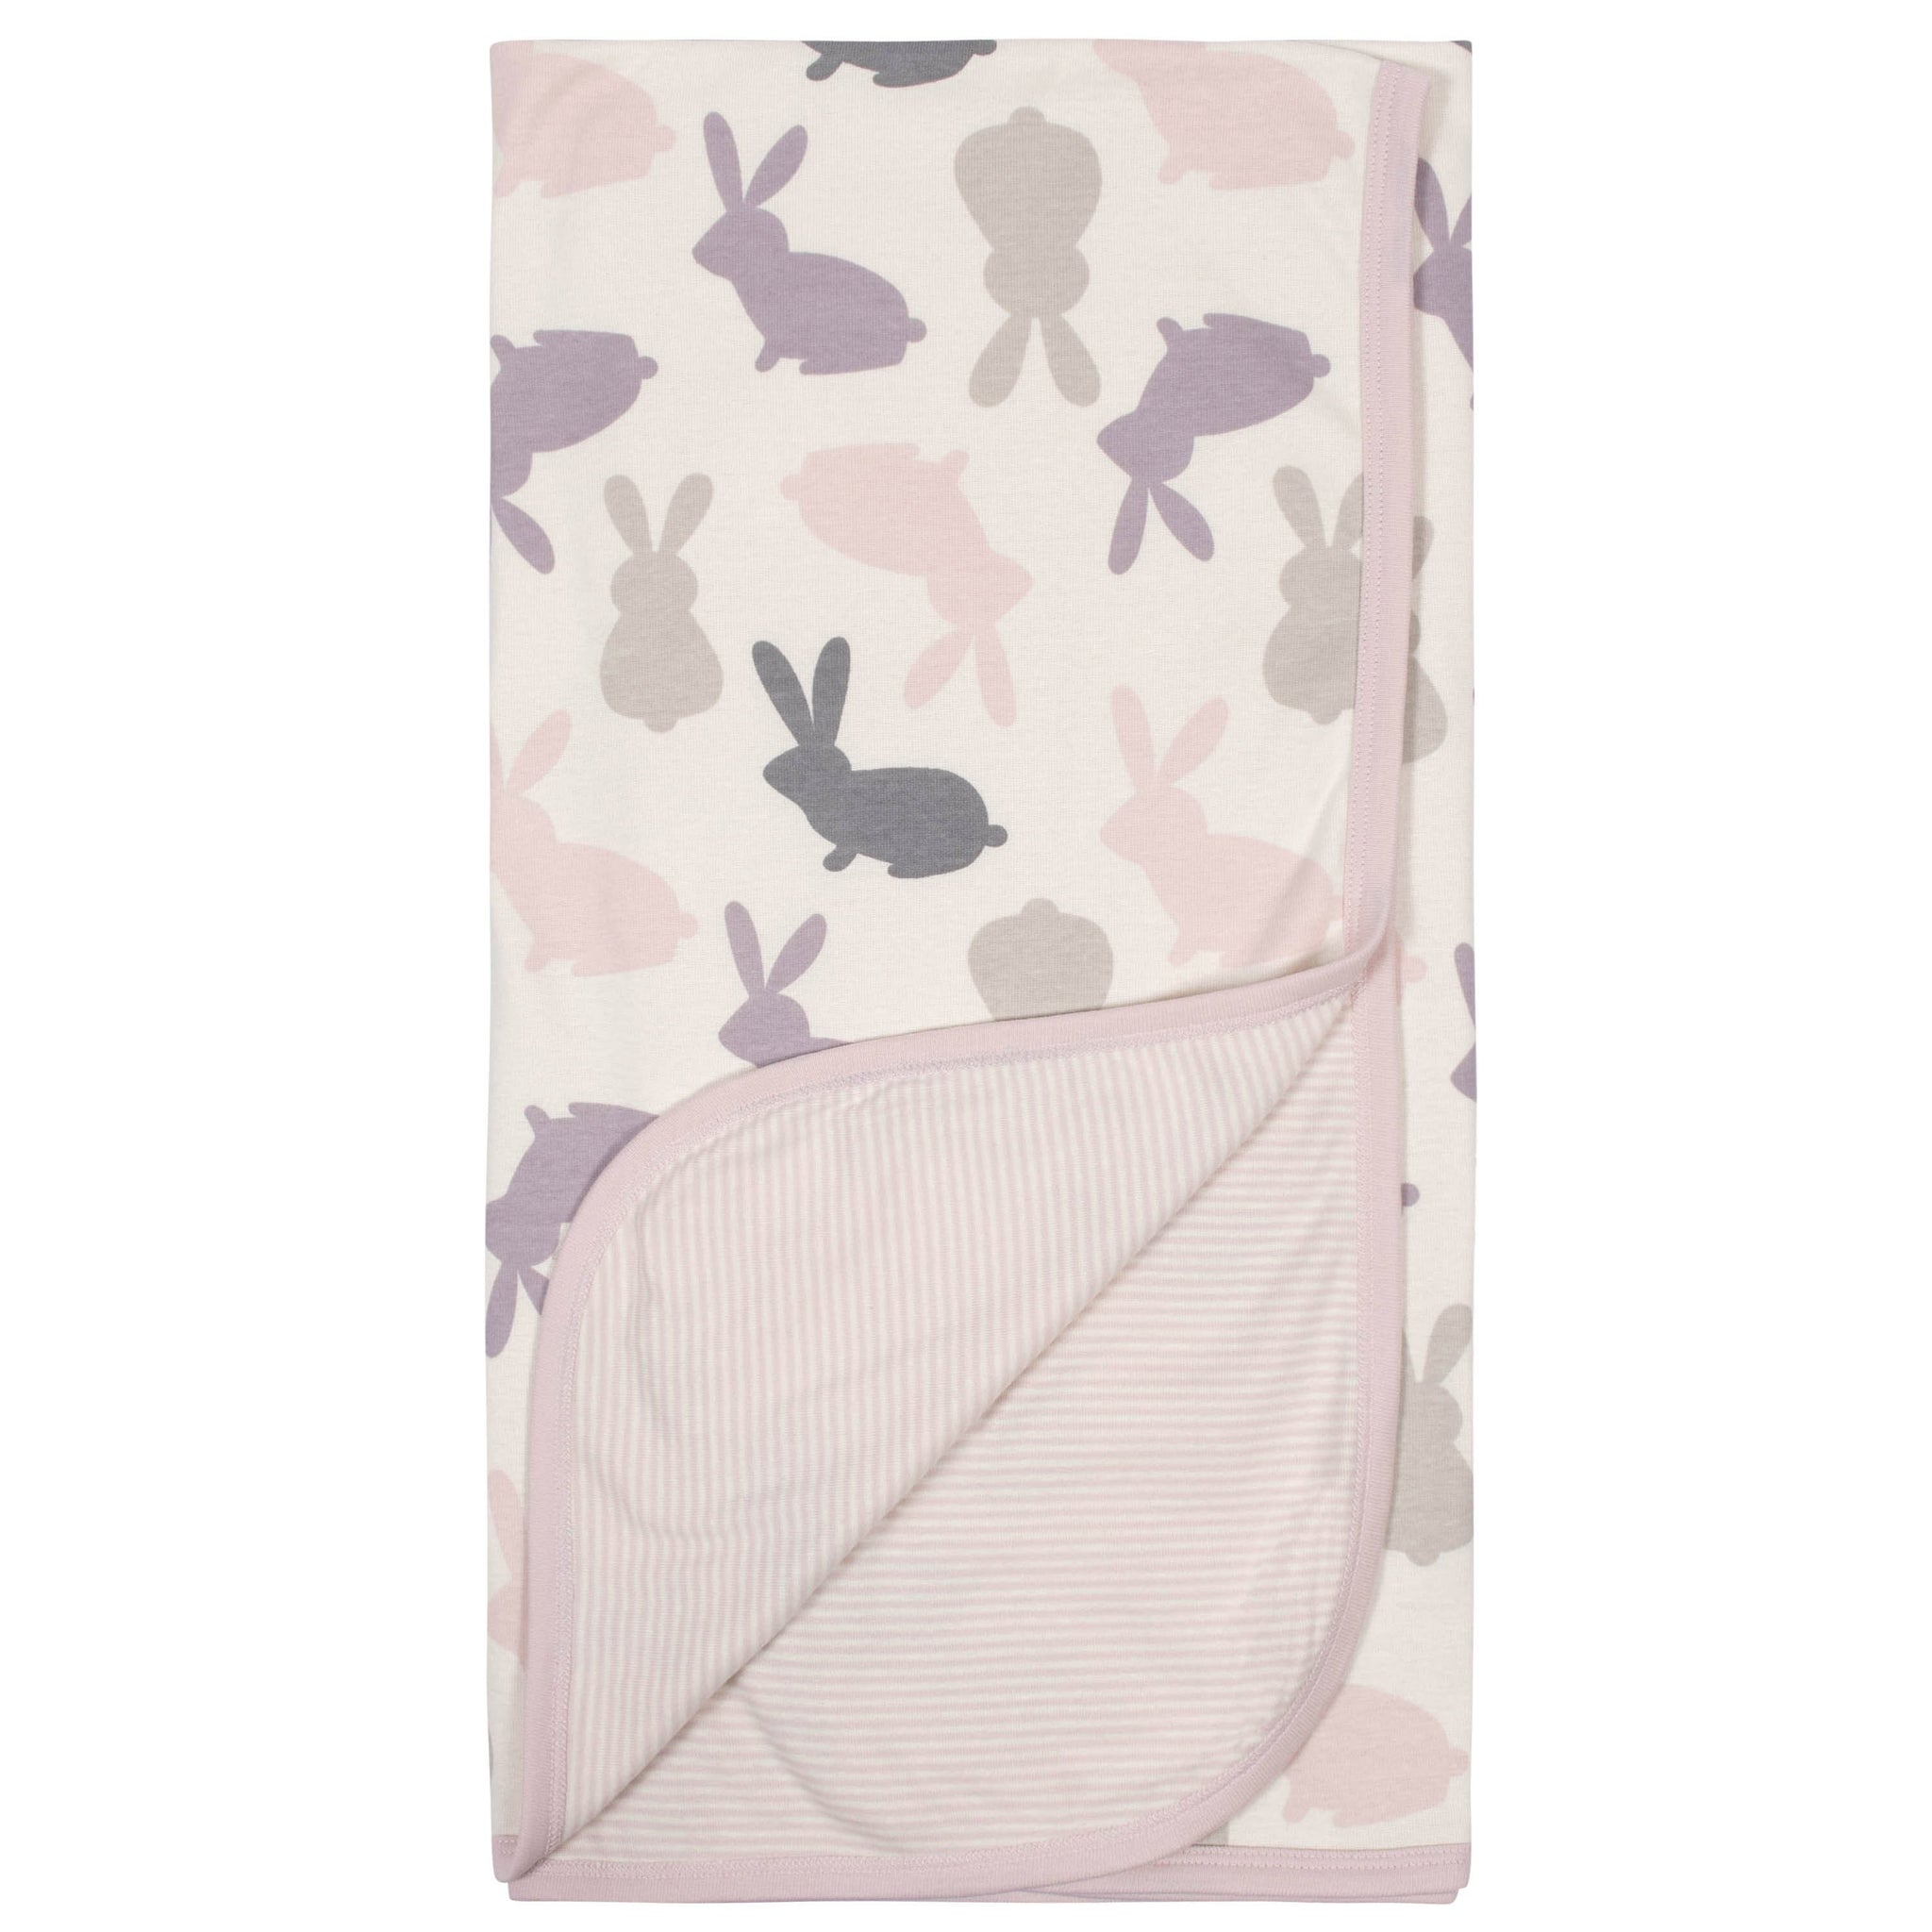 Gerber® Baby Girls Reversible Blanket - Bunny